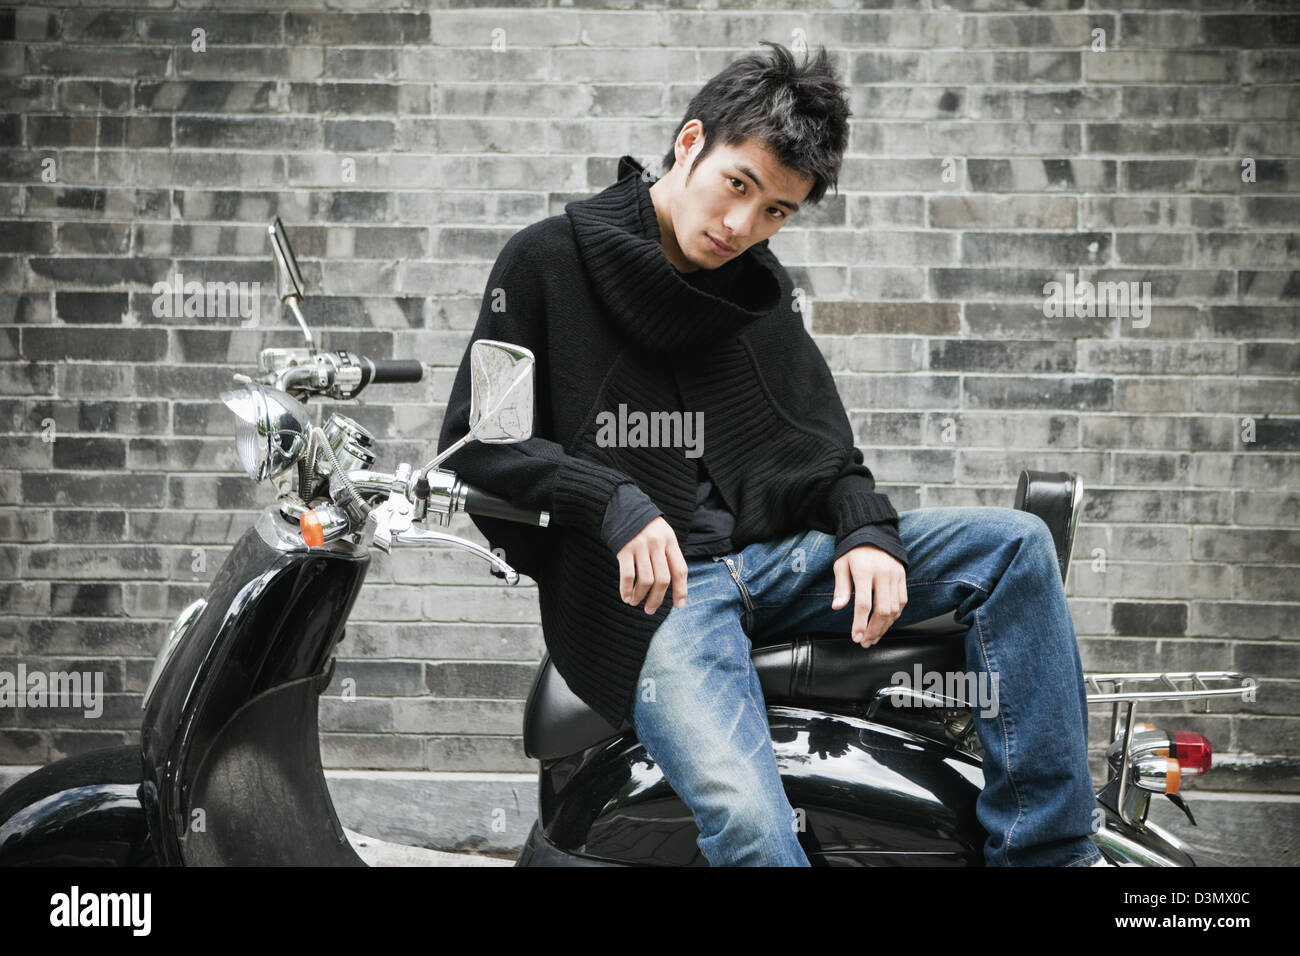 A fashionable young man in China - Stock Image